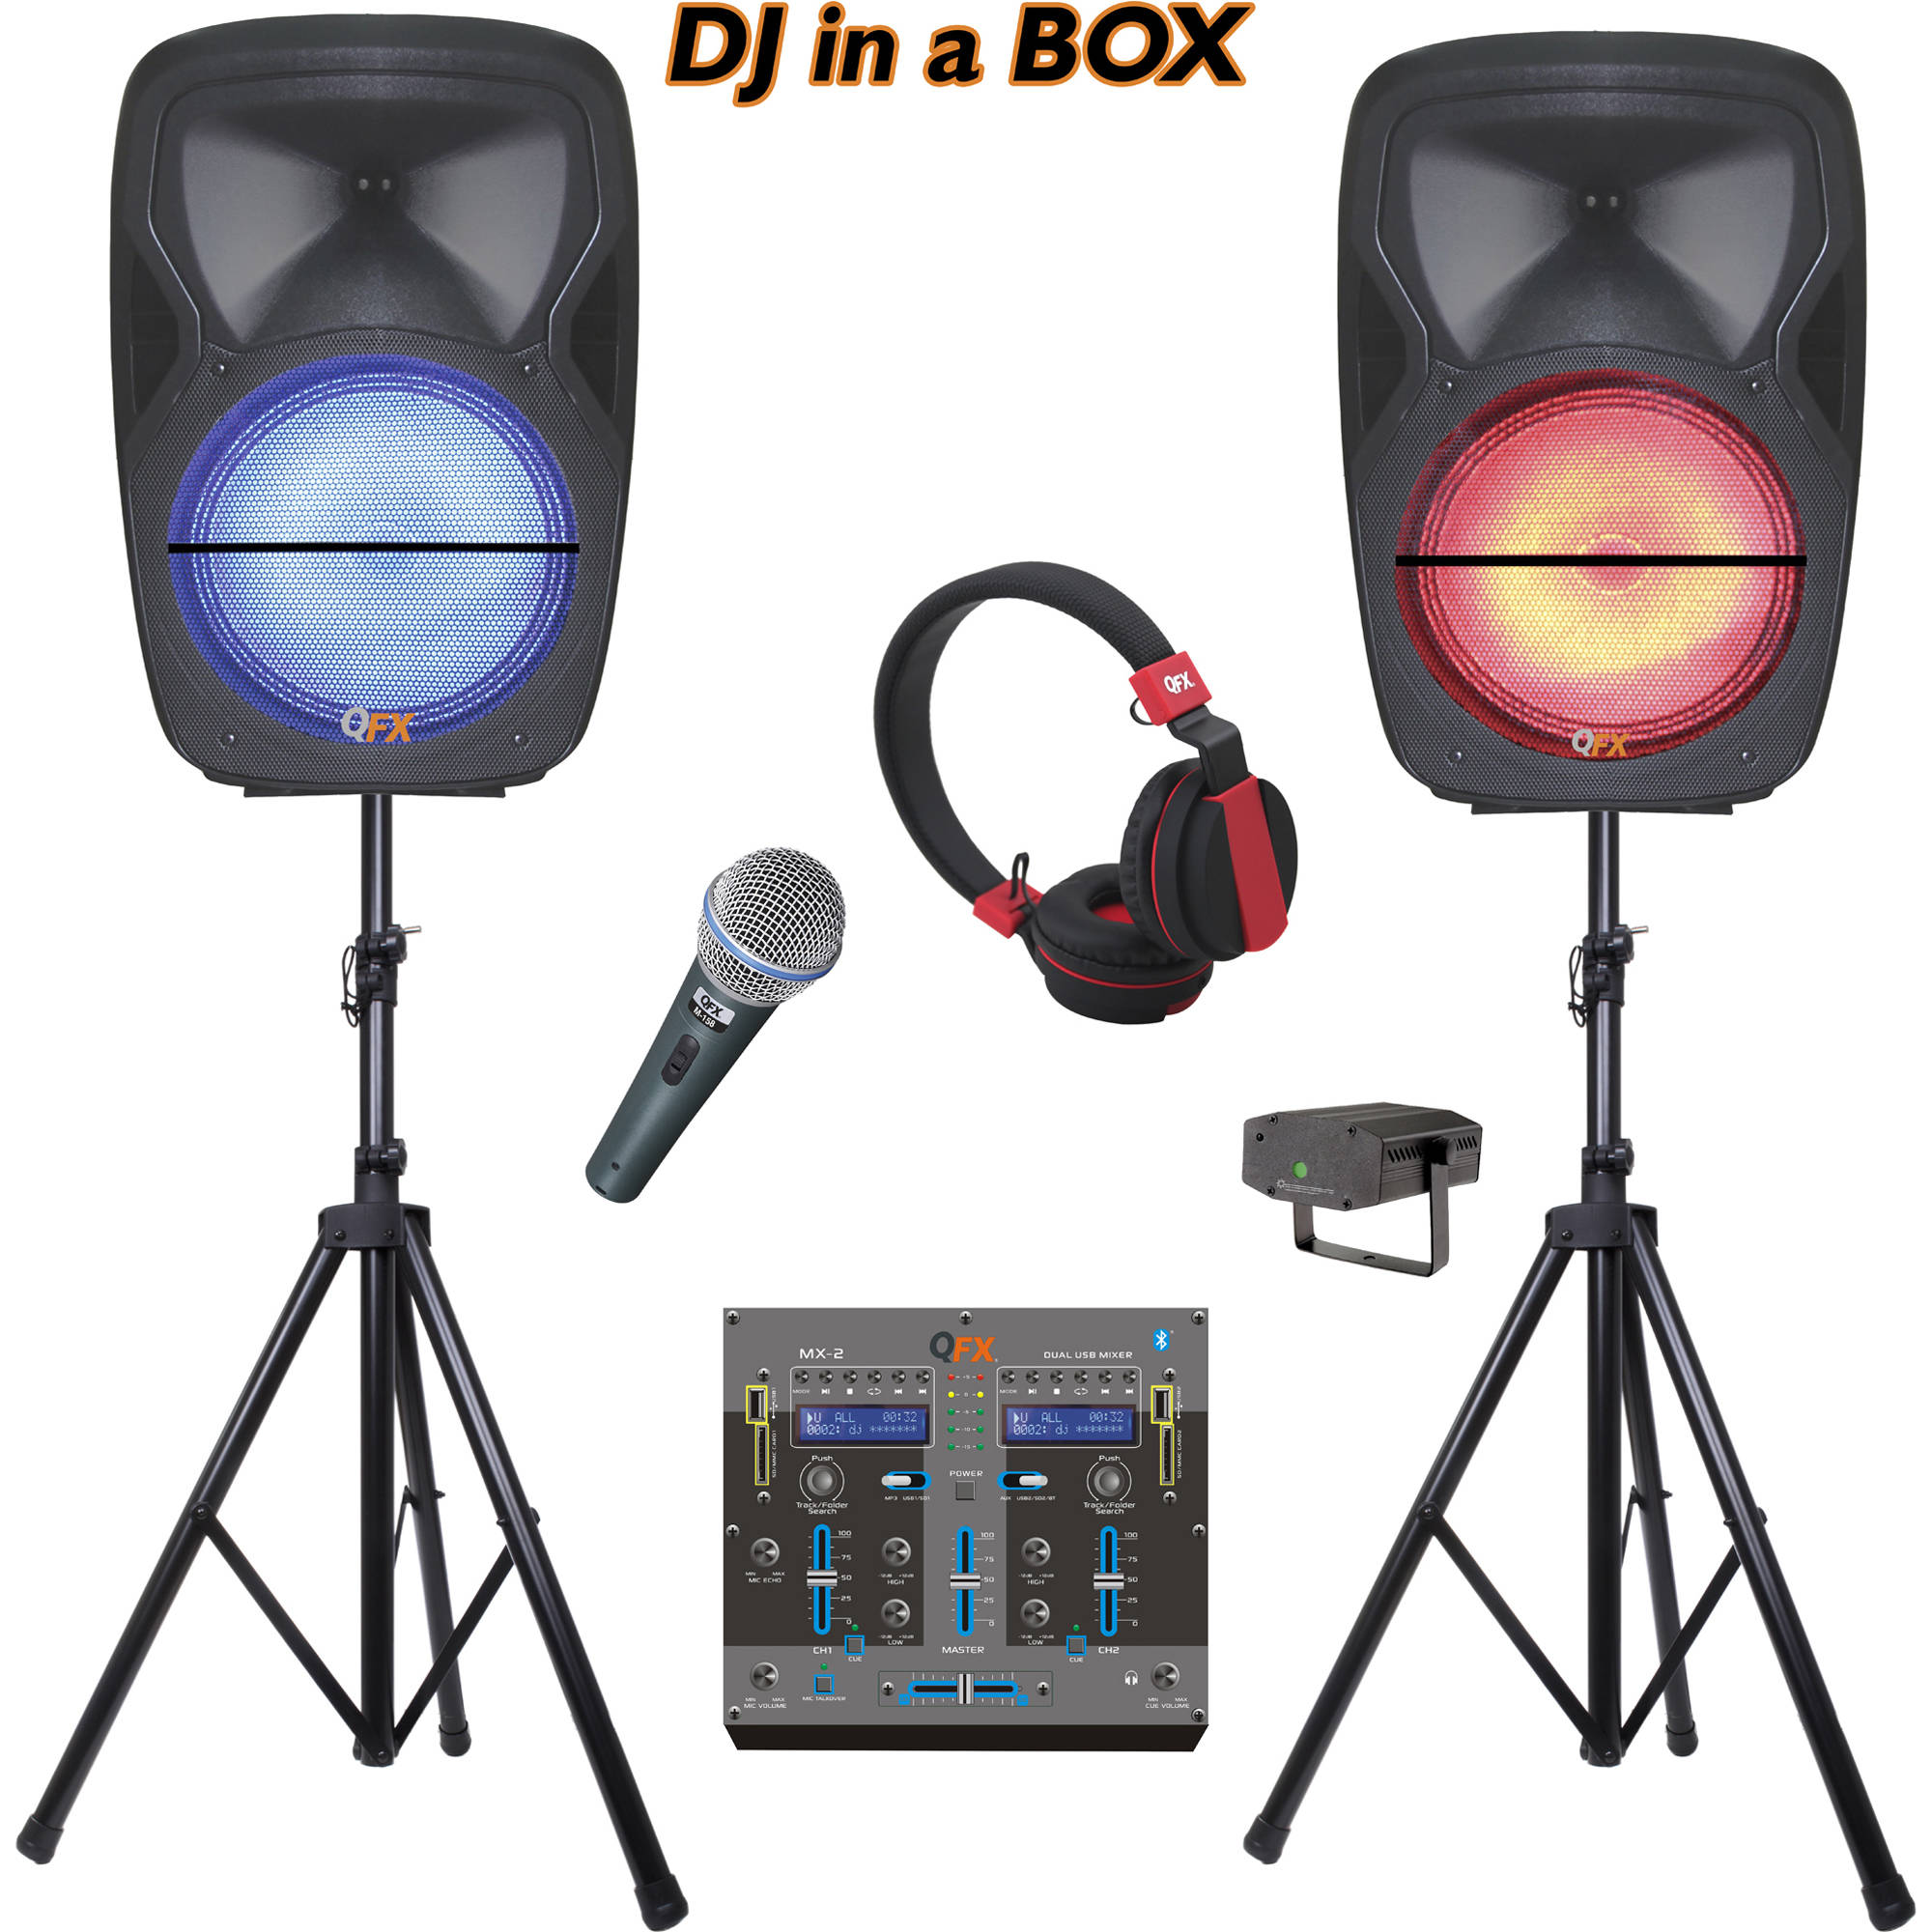 QFX Dual Portable Party Bluetooth Speakers With Mixer SM-215 B&H